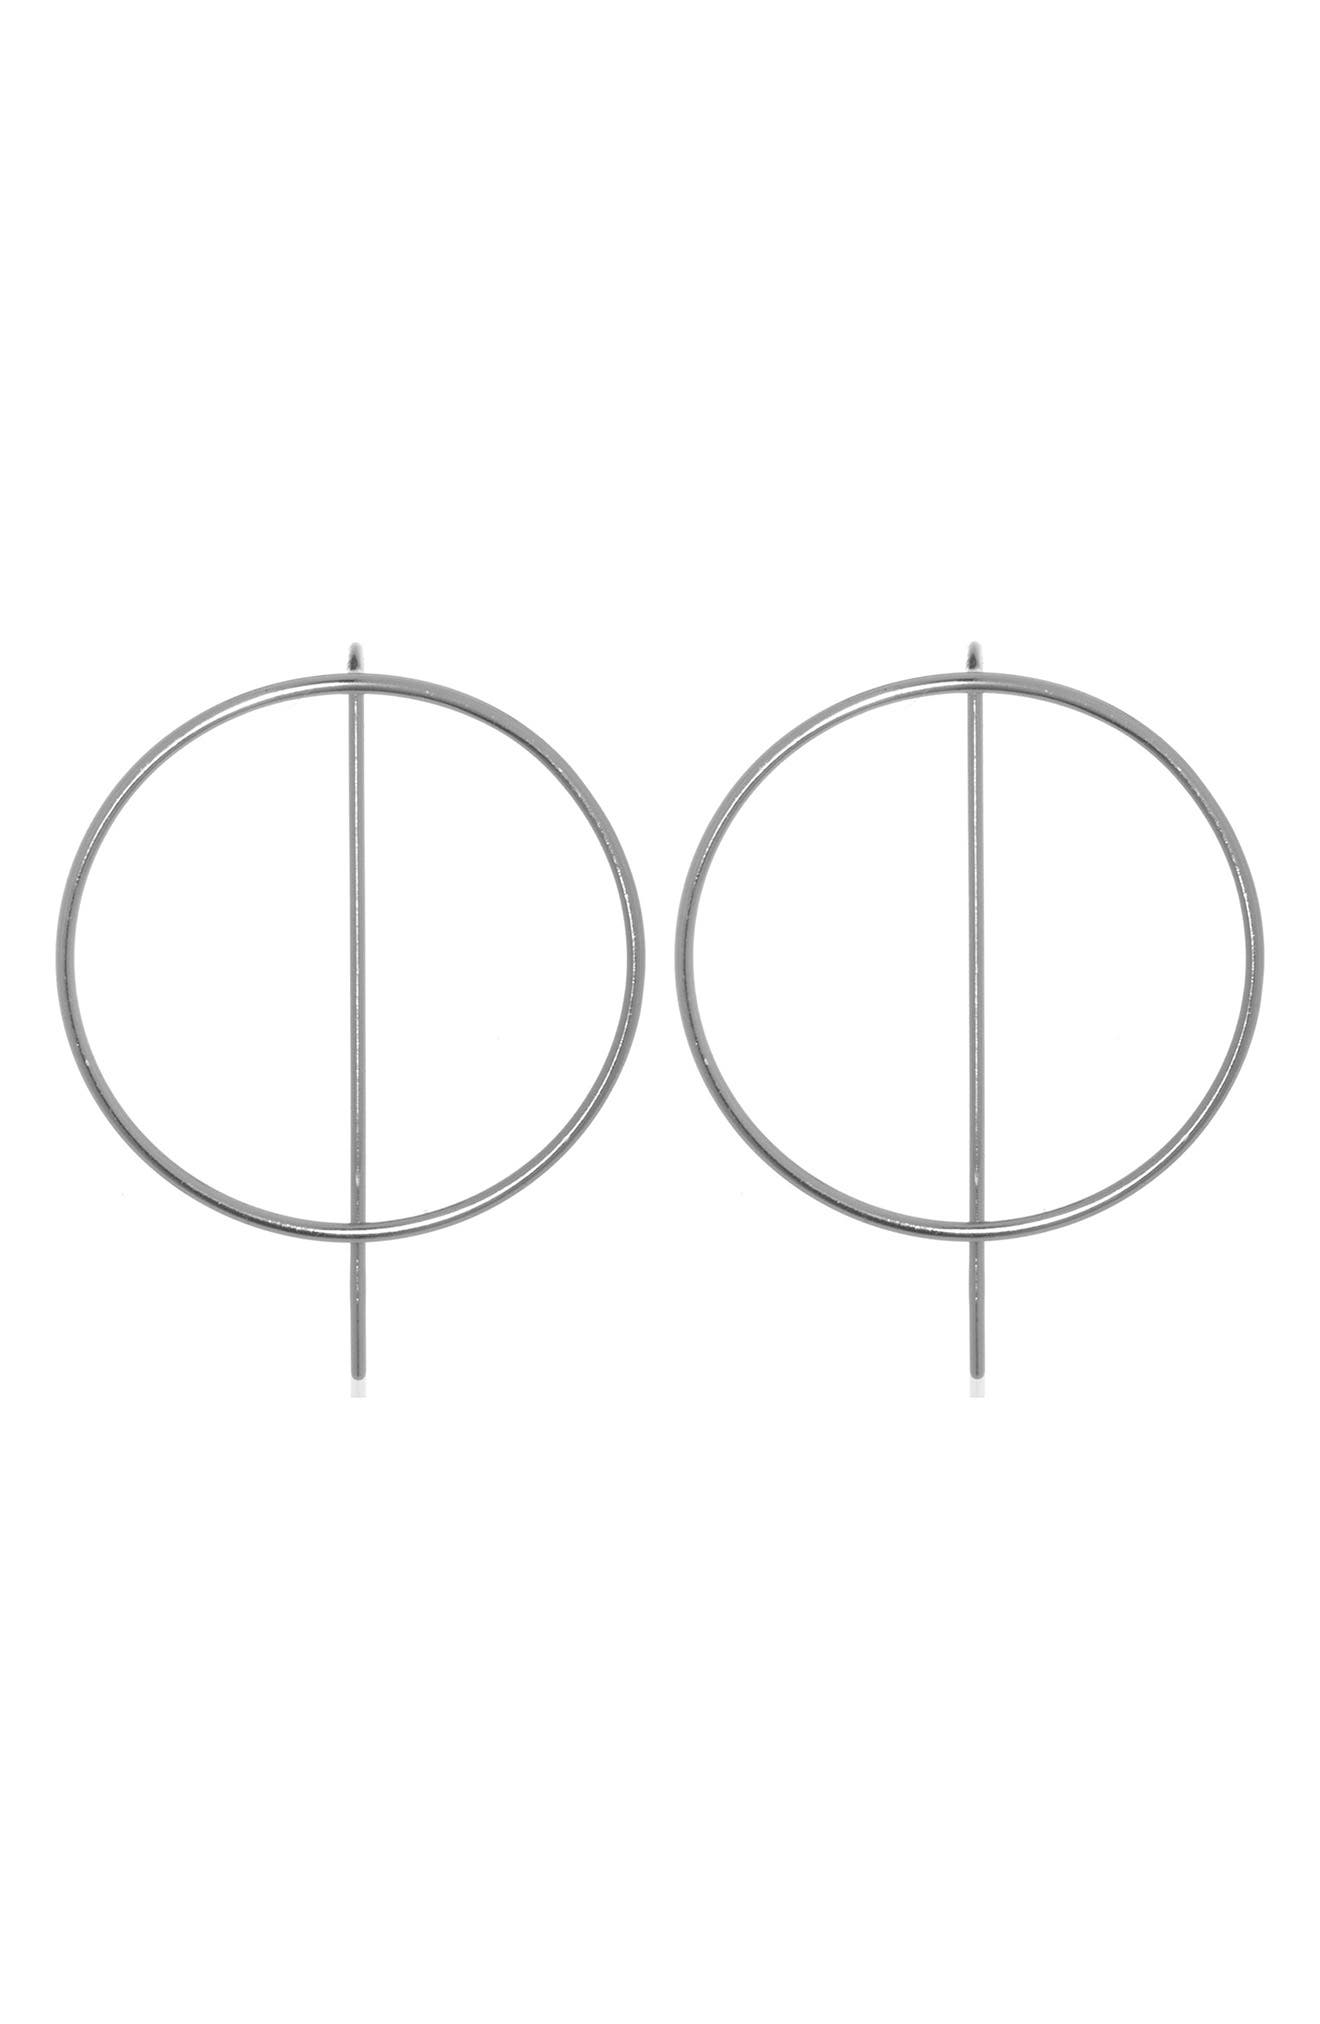 Pin Circle Earrings by Anuja Tolia